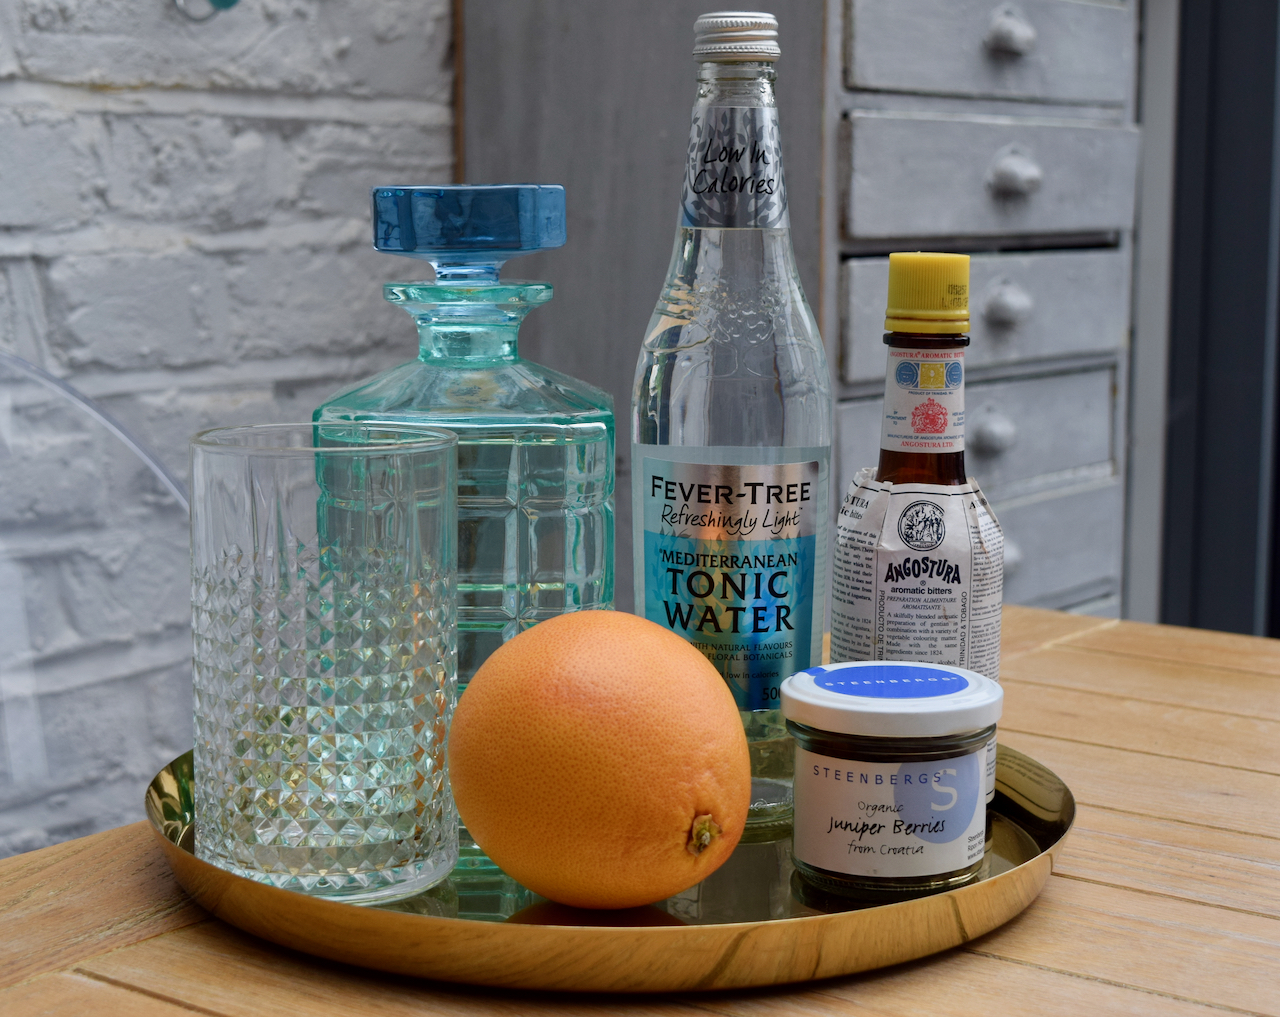 Spanish Gin and Tonic recipe from Lucy Loves Food Blog